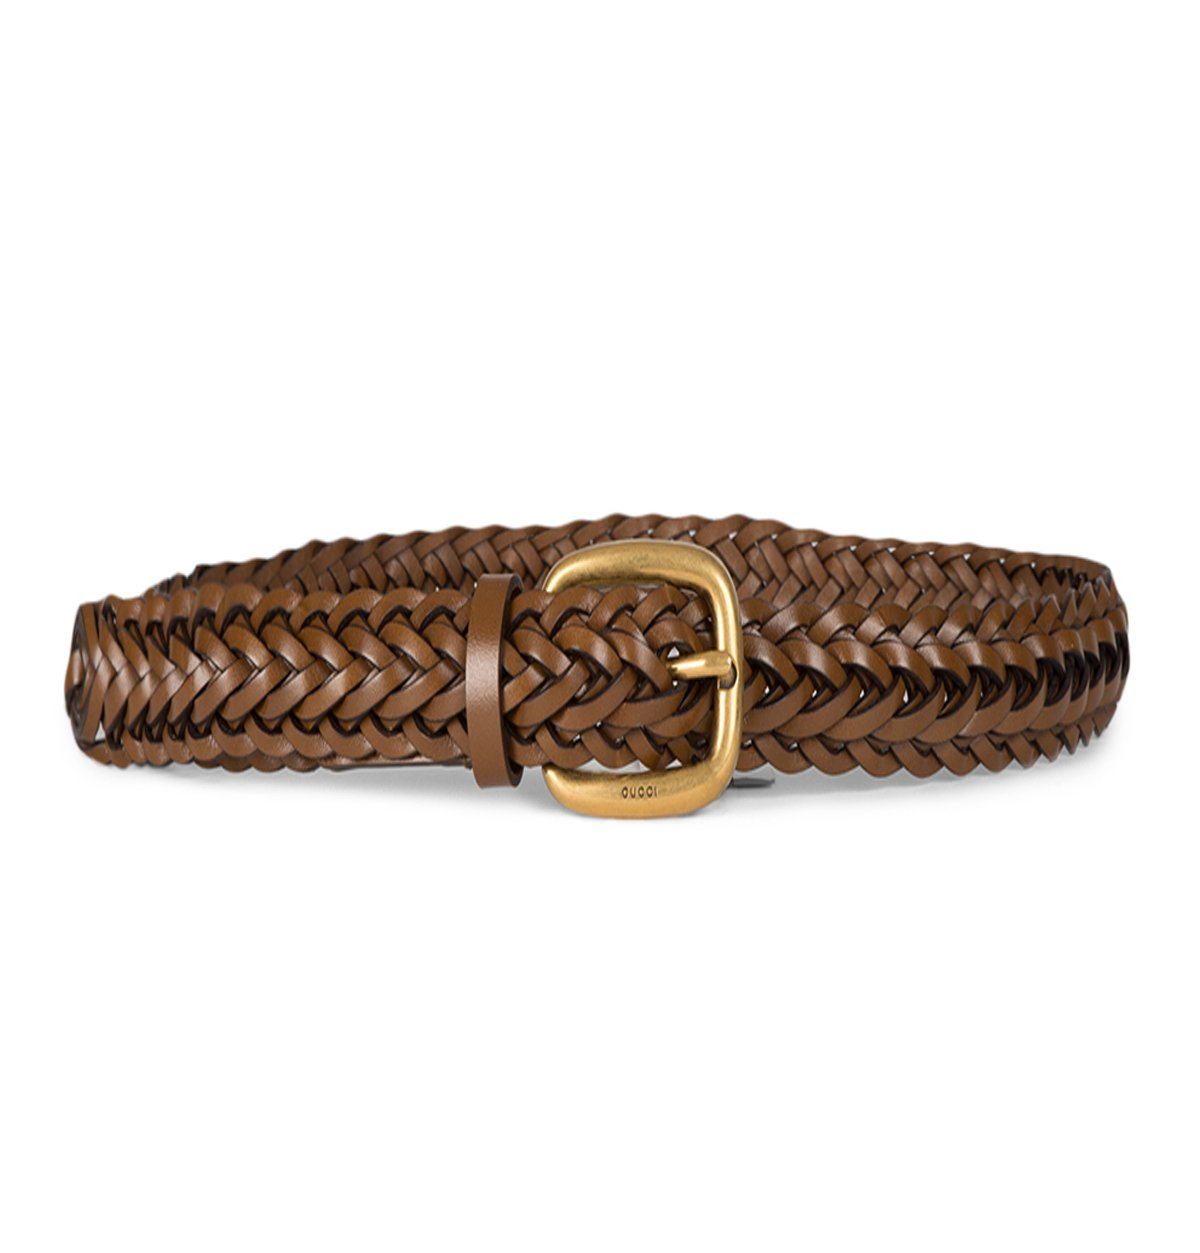 Gucci Women's Braided Leather Belt with Gold Buckle 380606 2535 Brown (32)